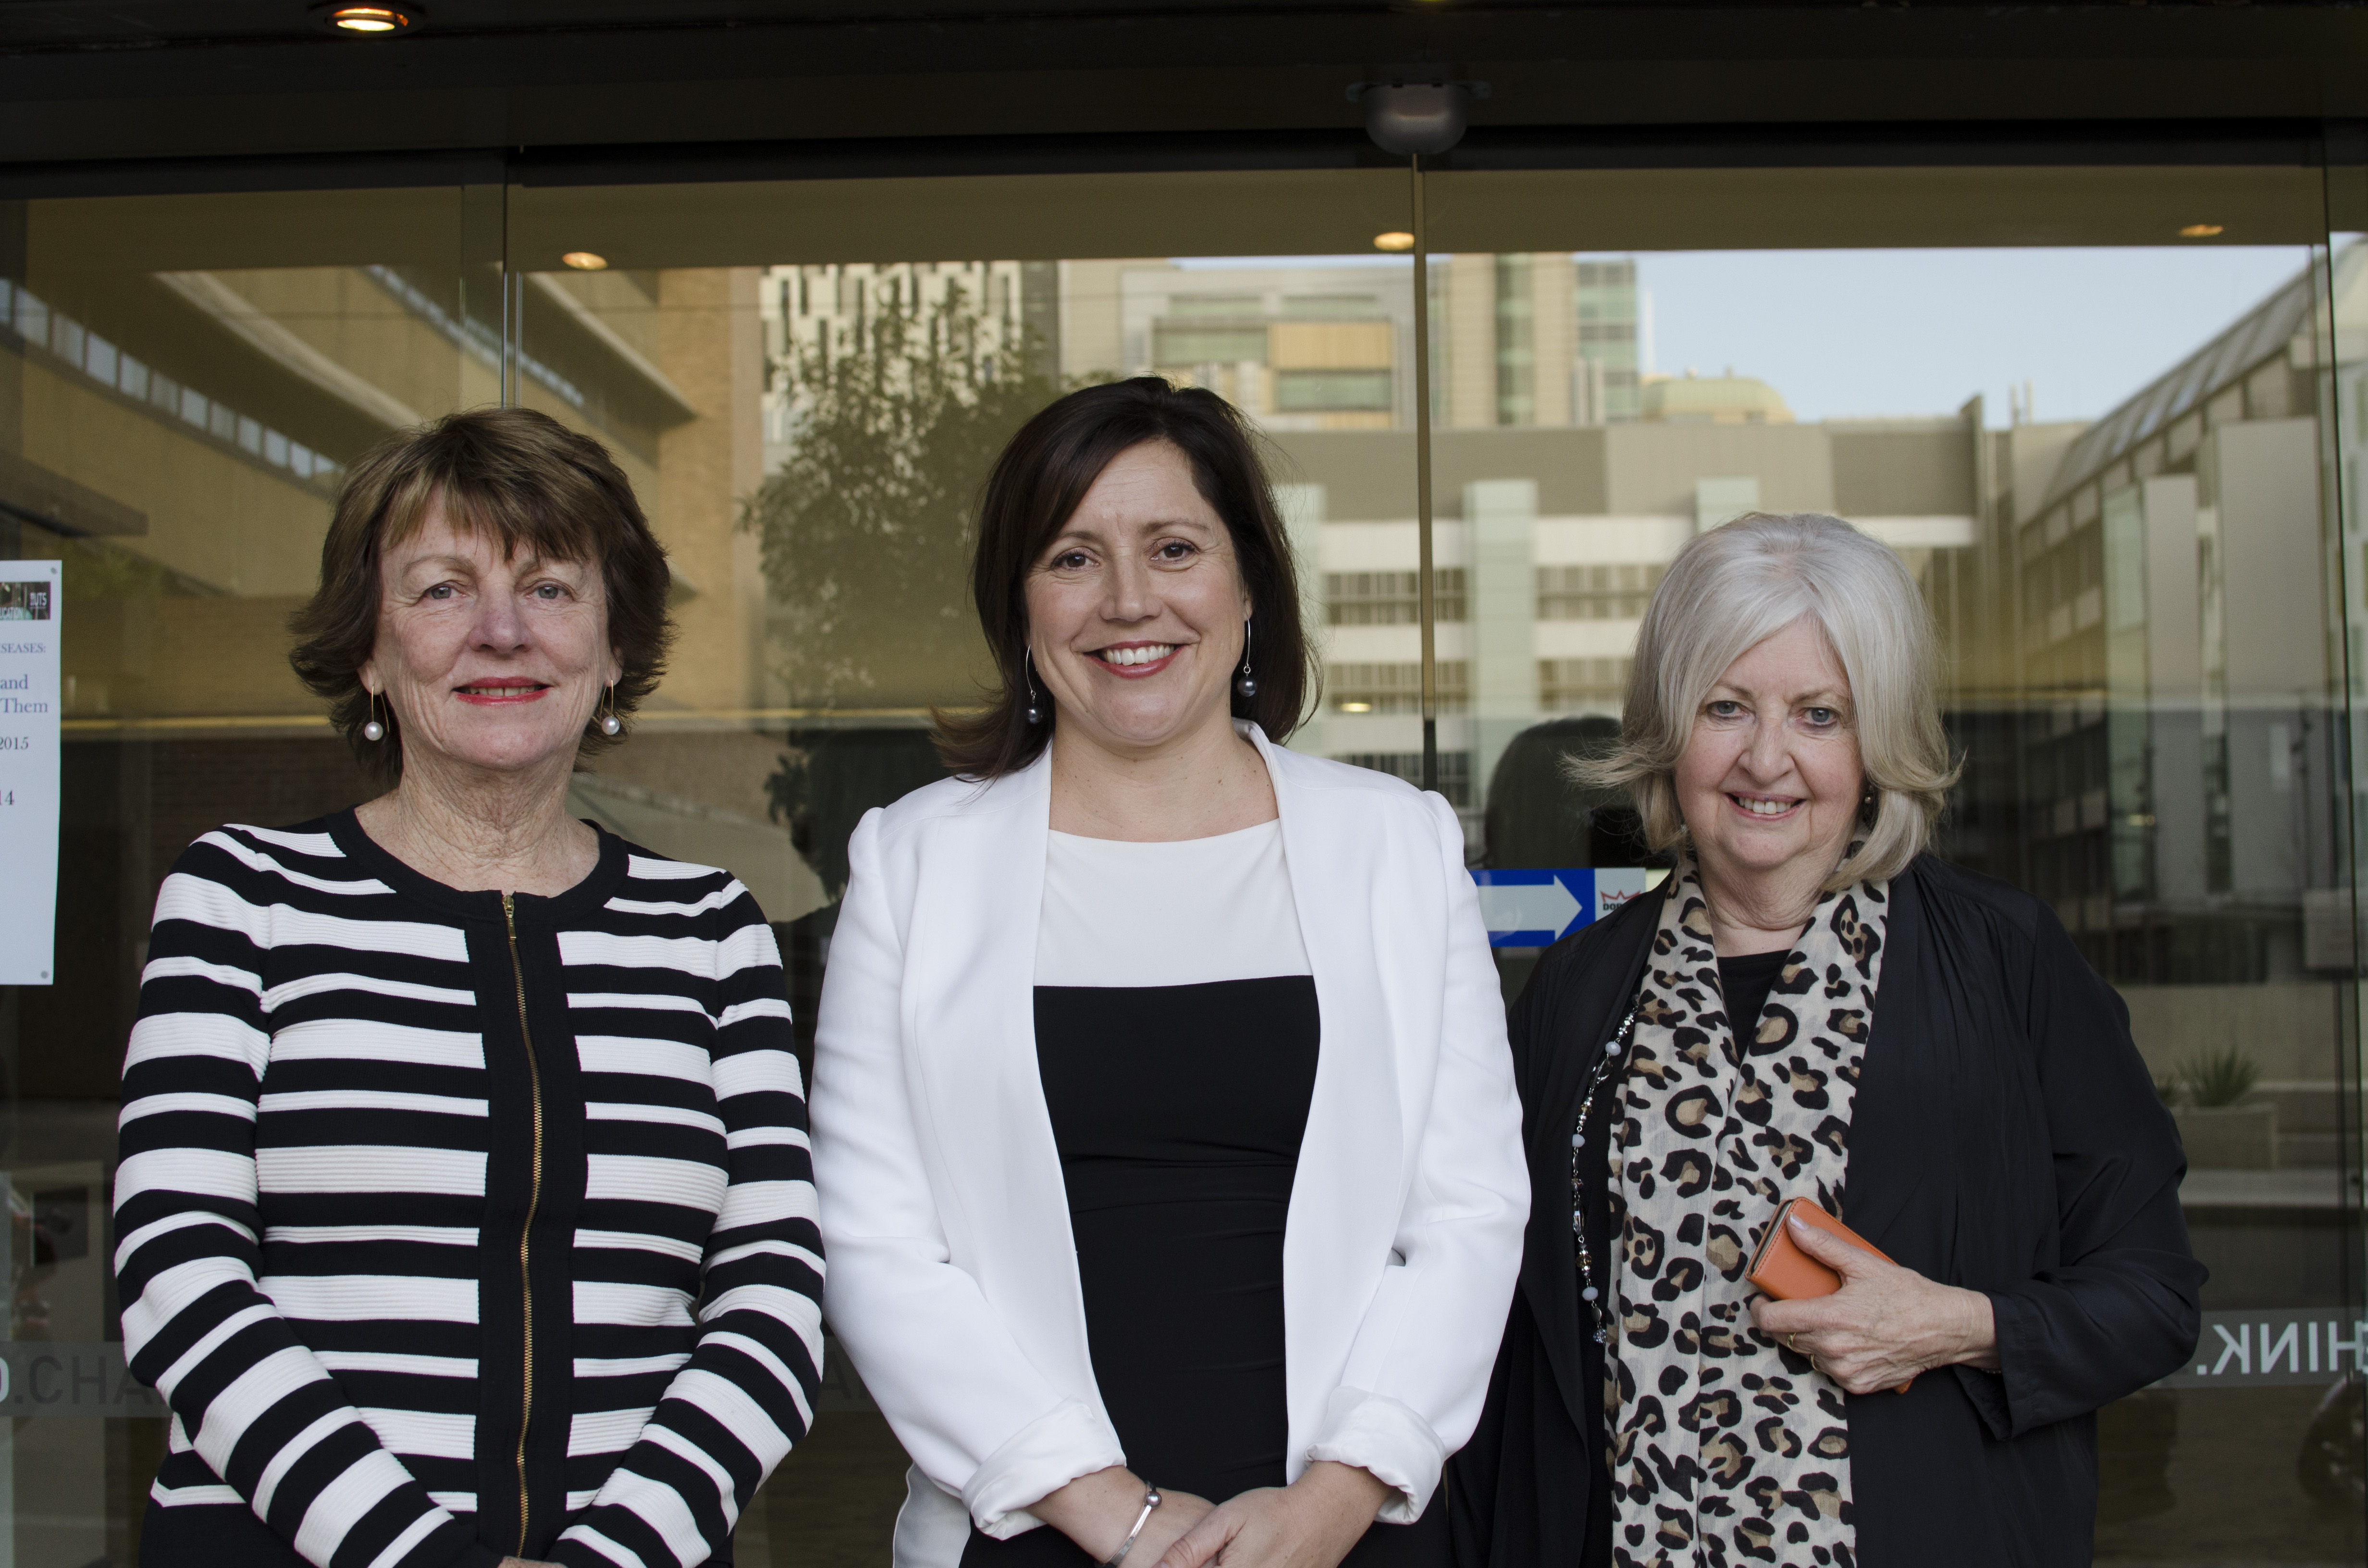 Shirley Alexander, Kerryn Baird, Rosemary Johnston outside UTS